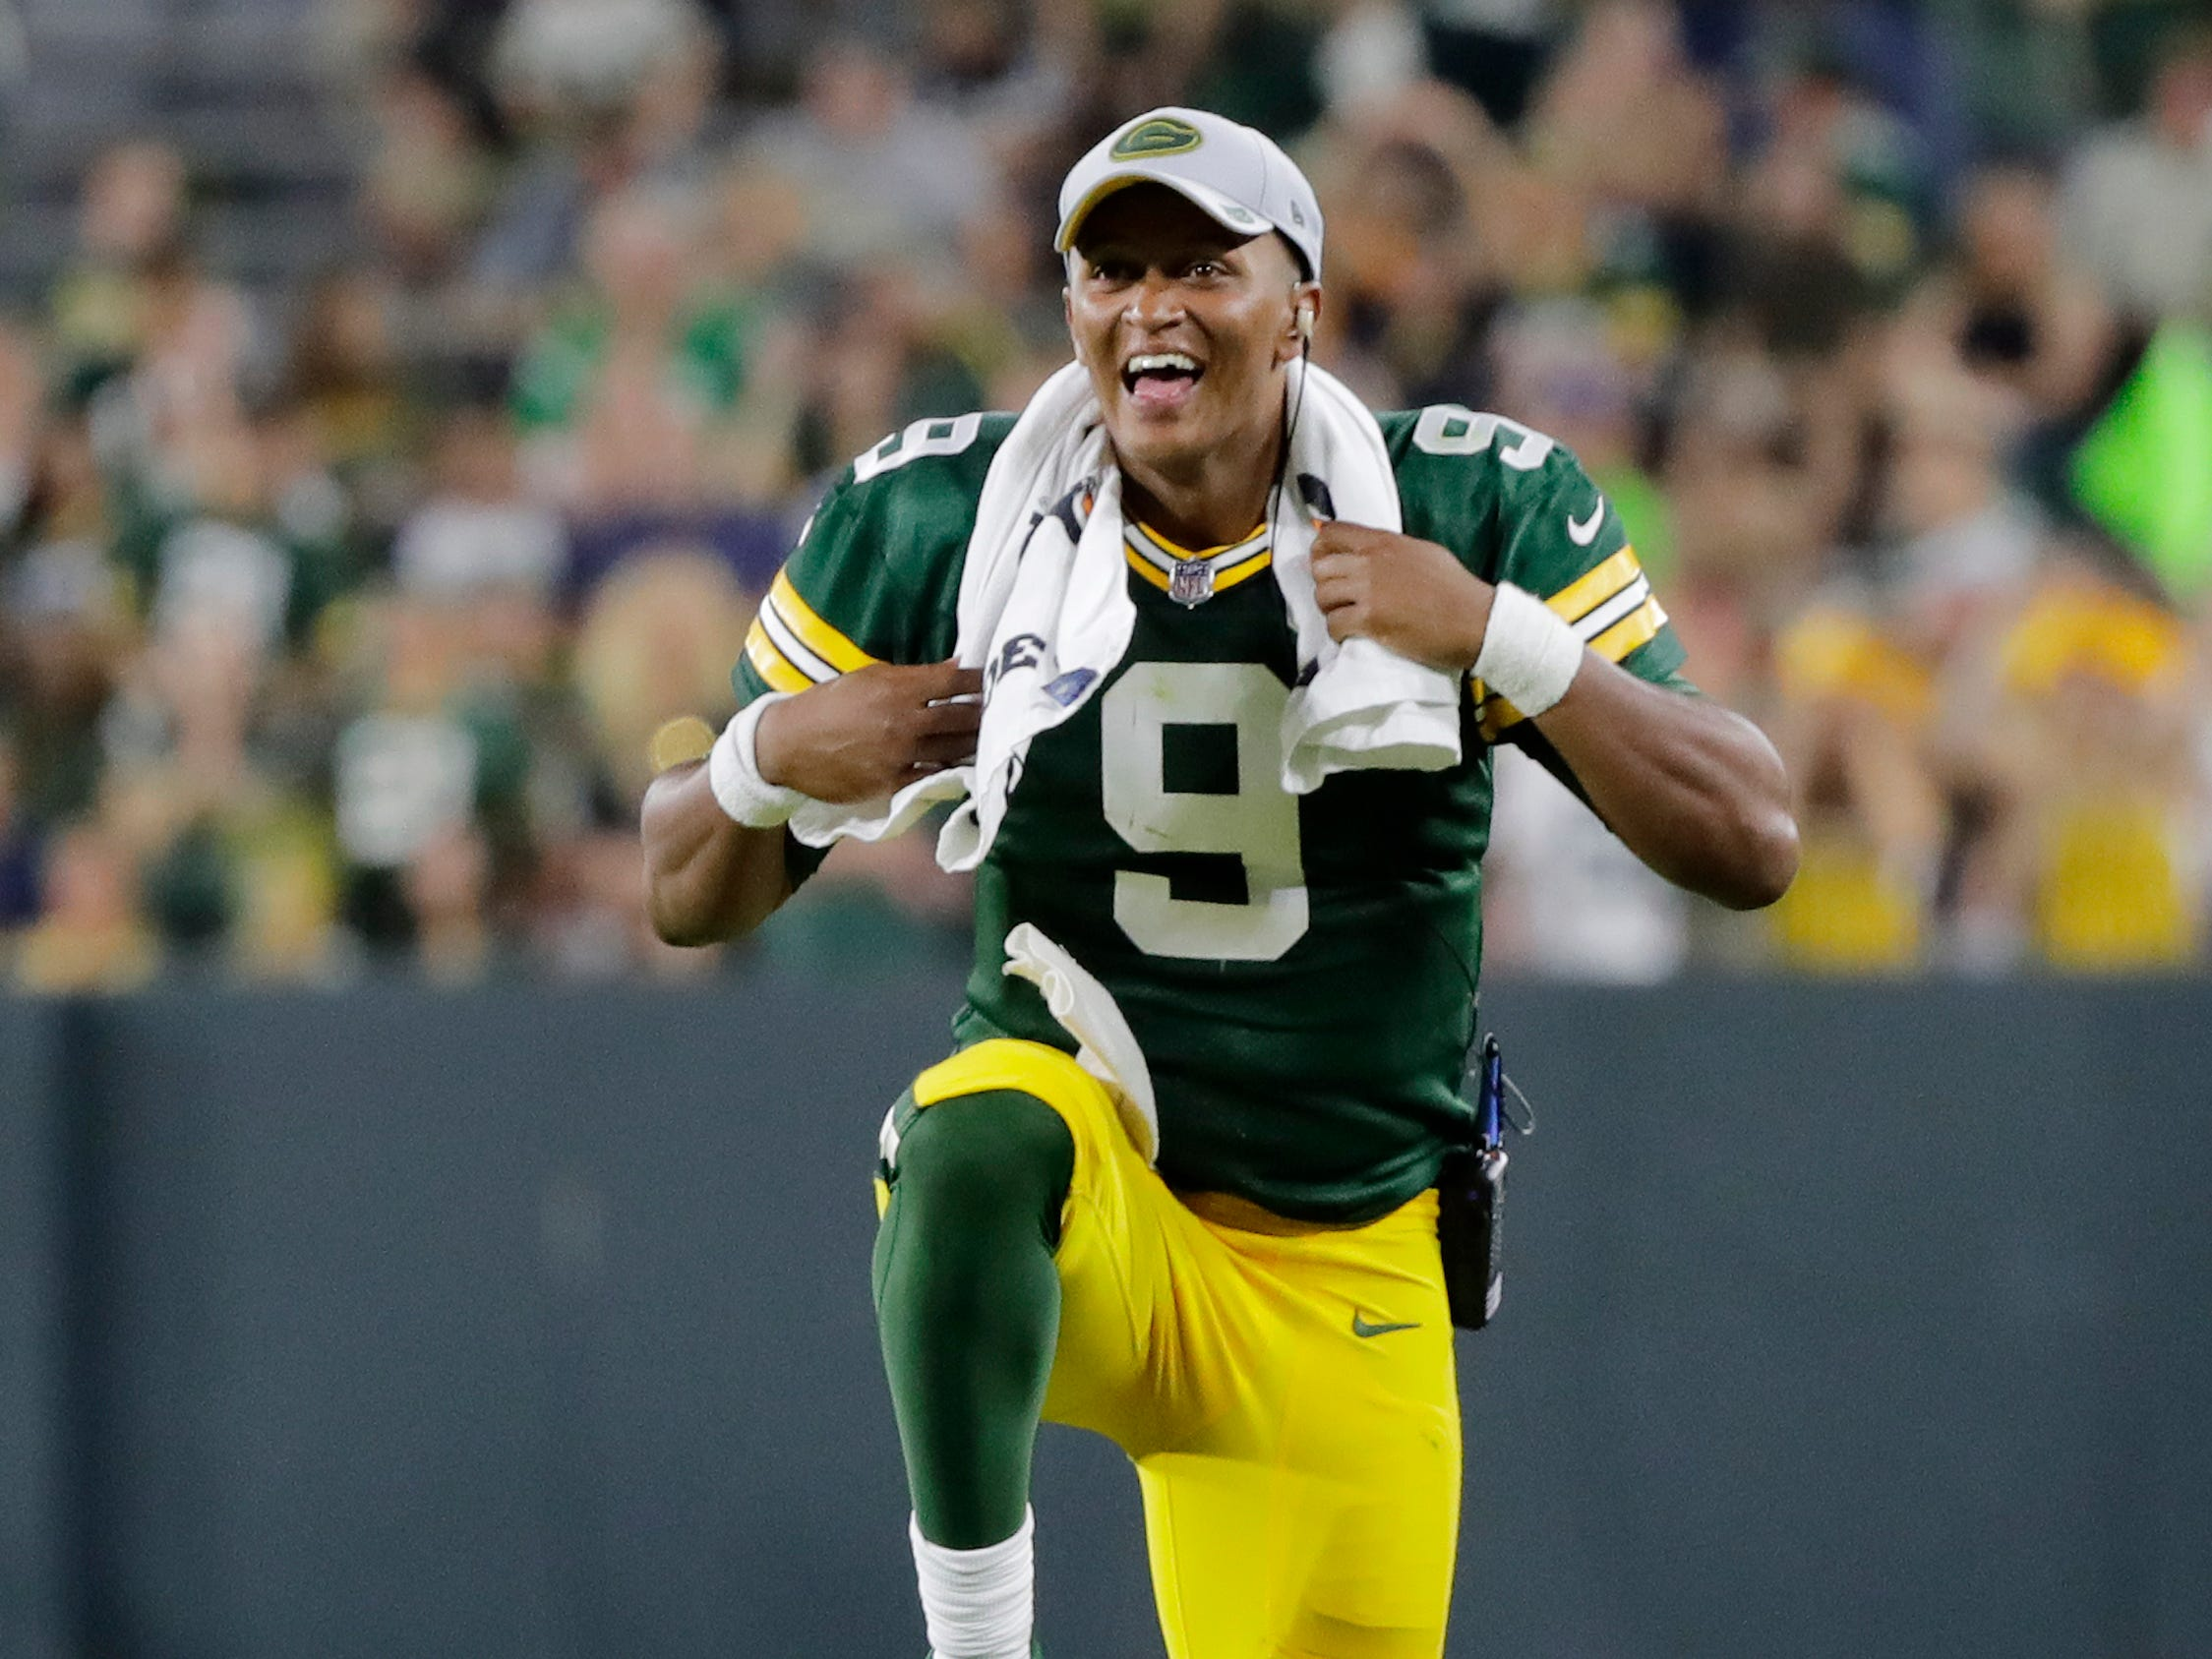 Green Bay Packers quarterback DeShone Kizer (9) celebrates after a Packers touchdown in an NFL preseason game at Lambeau Field on Thursday, August 9, 2018 in Green Bay, Wis.